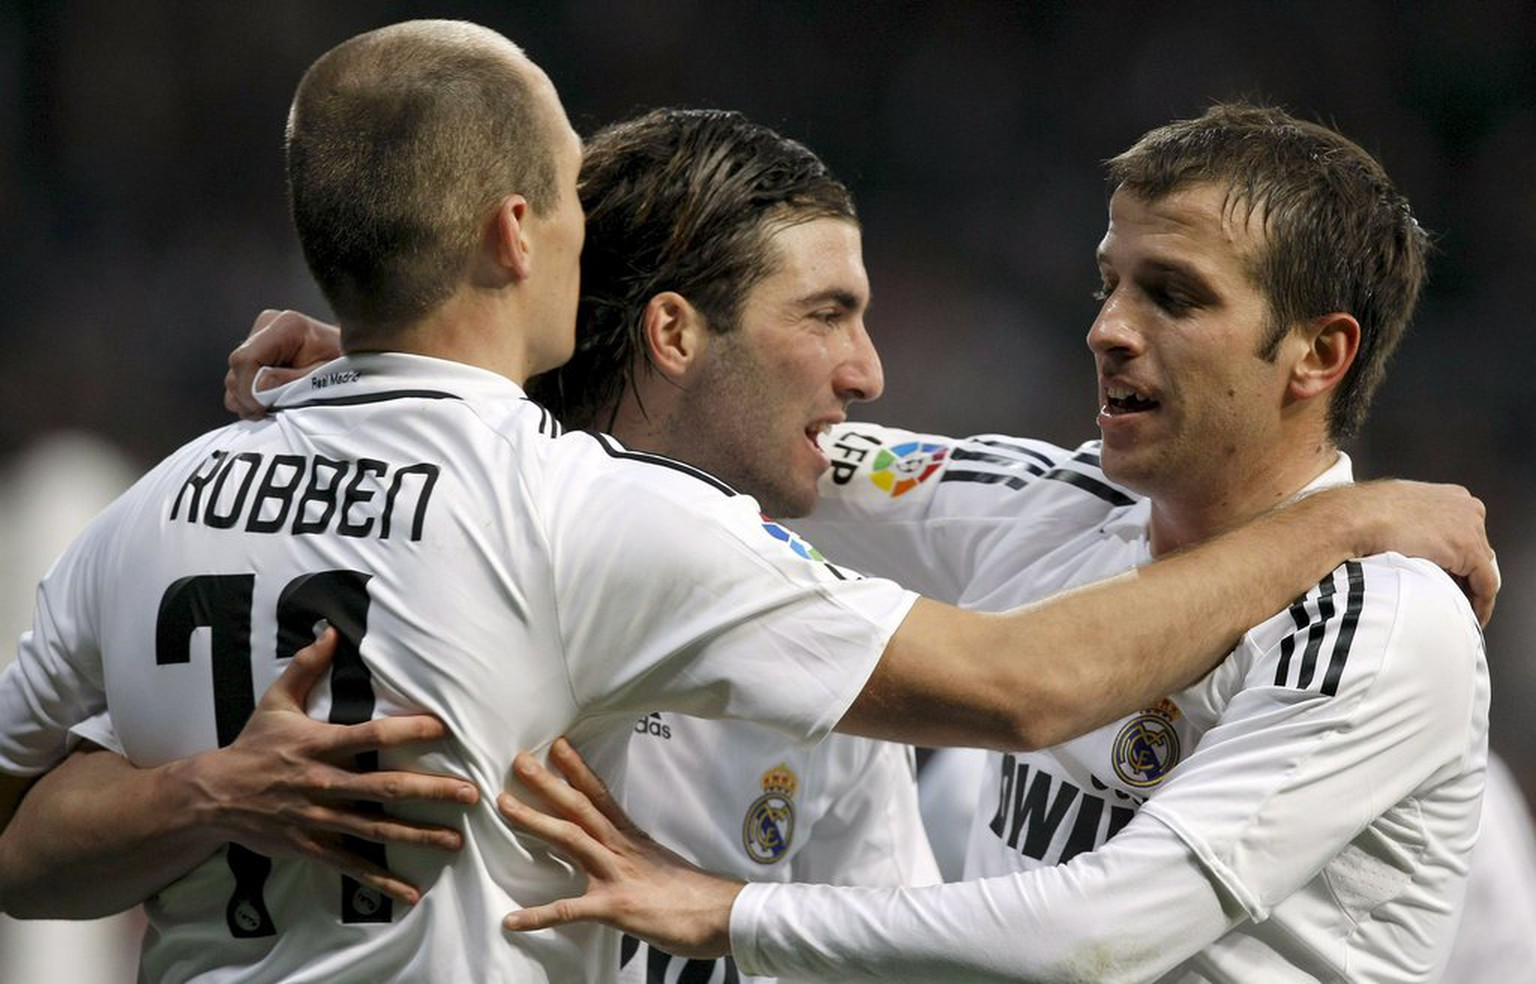 epa01603769 Real Madrid's Argentinian forward Gonzalo Higuain (C) celebrates with his teammates Dutch striker Arjen Robben (L) and Dutch midfielder Rafael van der Vaart (R) after scoring second goal against Osasuna during their Spanish Primera Division soccer match at Santiago Bernabeu stadium in downtown Madrid, central Spain, 18 January 2009.  EPA/Ballesteros